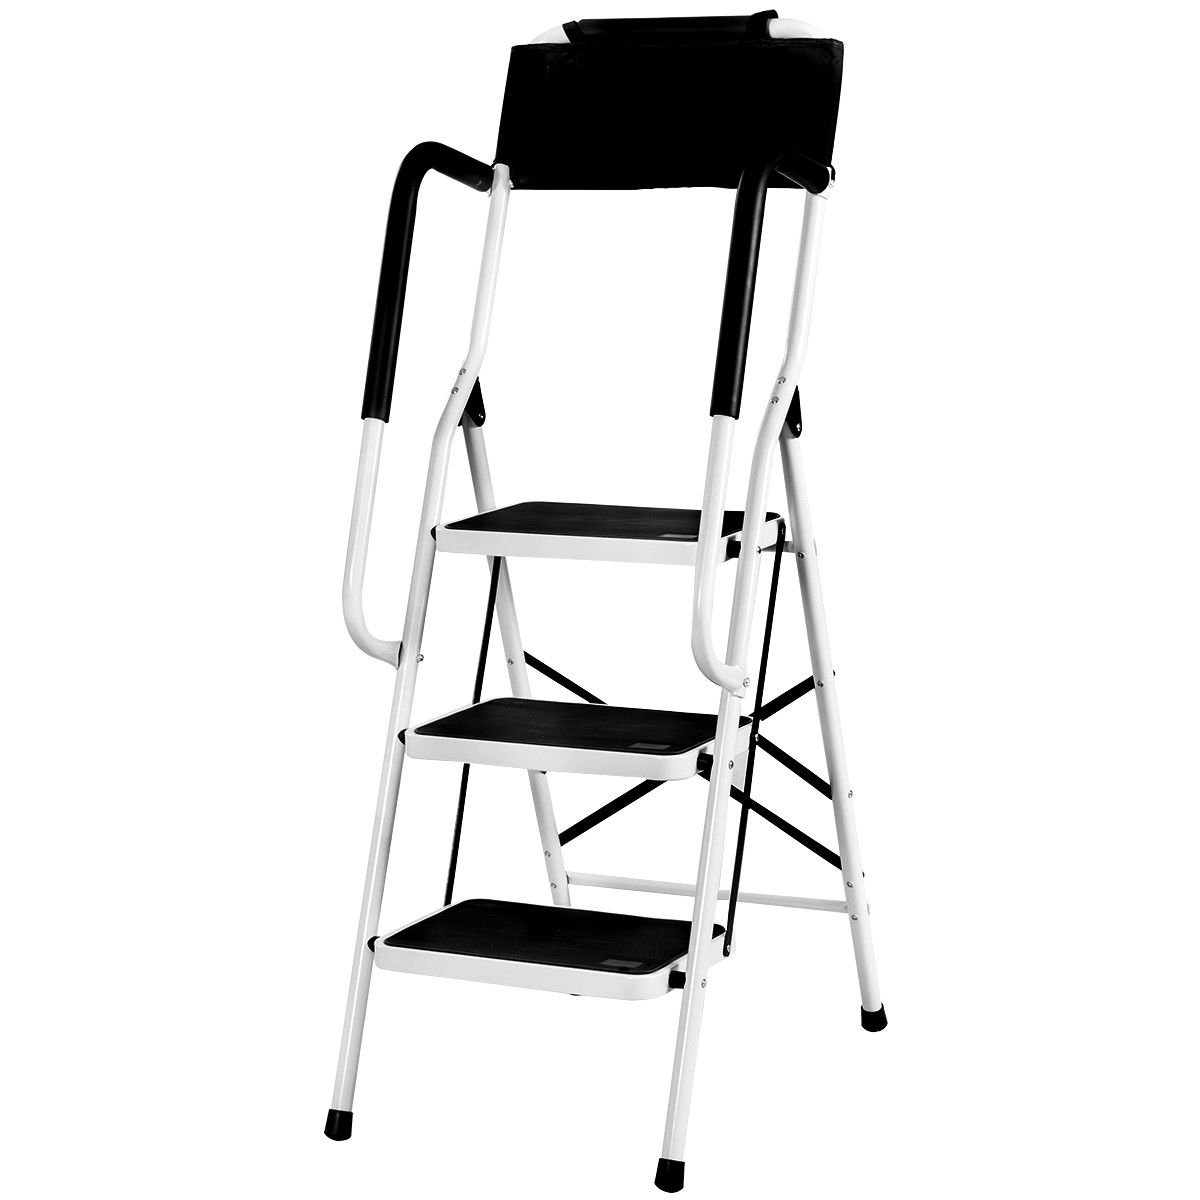 Giantex Folding 3 Step Ladder W/Padded Side Handrails Non-Slip Steps Tool Pouch Caddy Lightweight Powerful Capacity